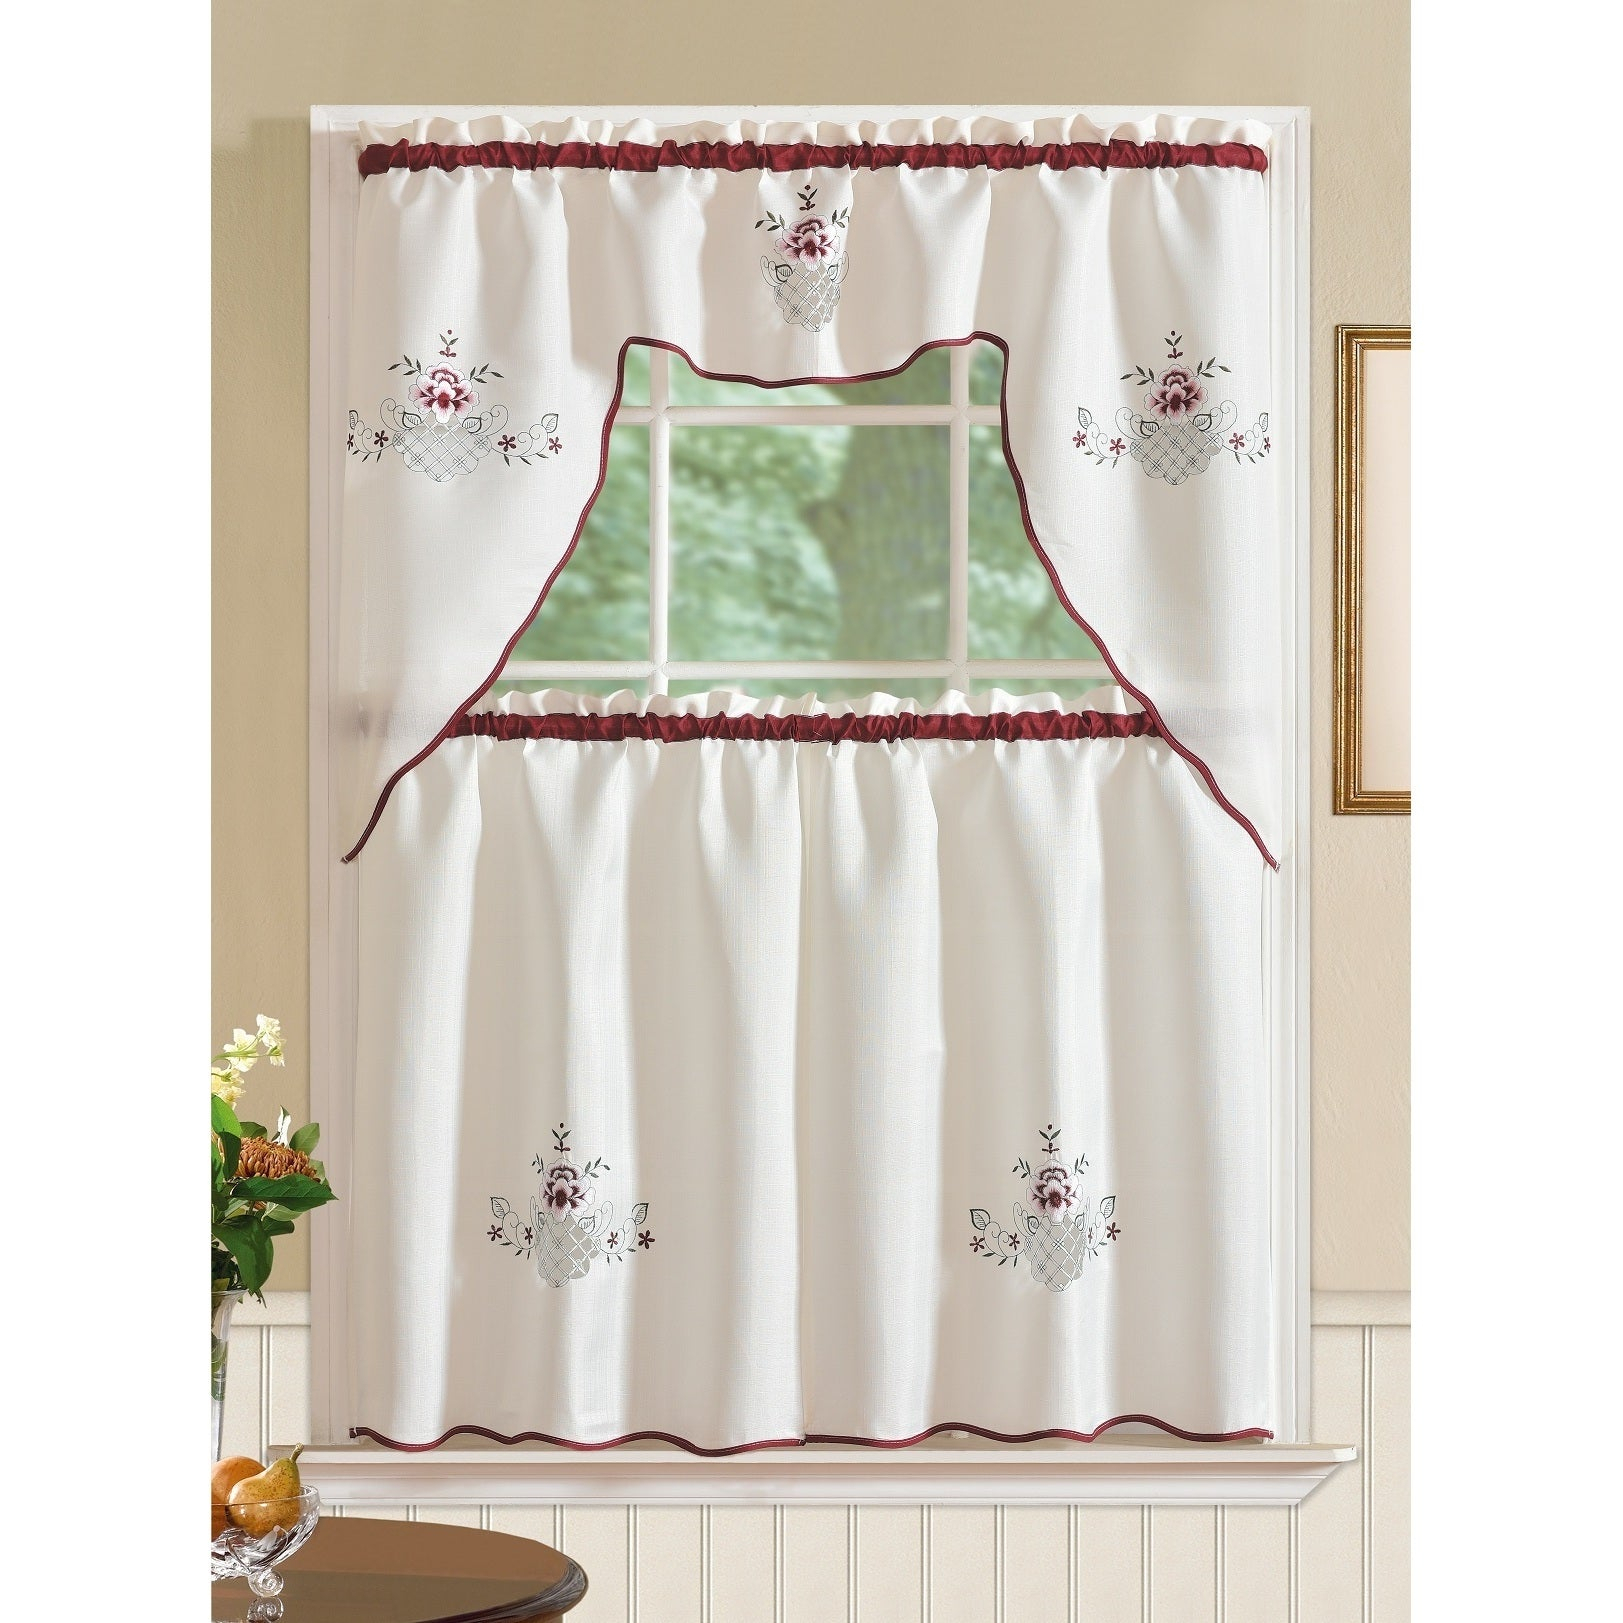 Rt Designers Collection Imperial Flower Jacquard Tier And Valance Kitchen  Curtain Set Intended For Grace Cinnabar 5 Piece Curtain Tier And Swag Sets (Gallery 8 of 20)